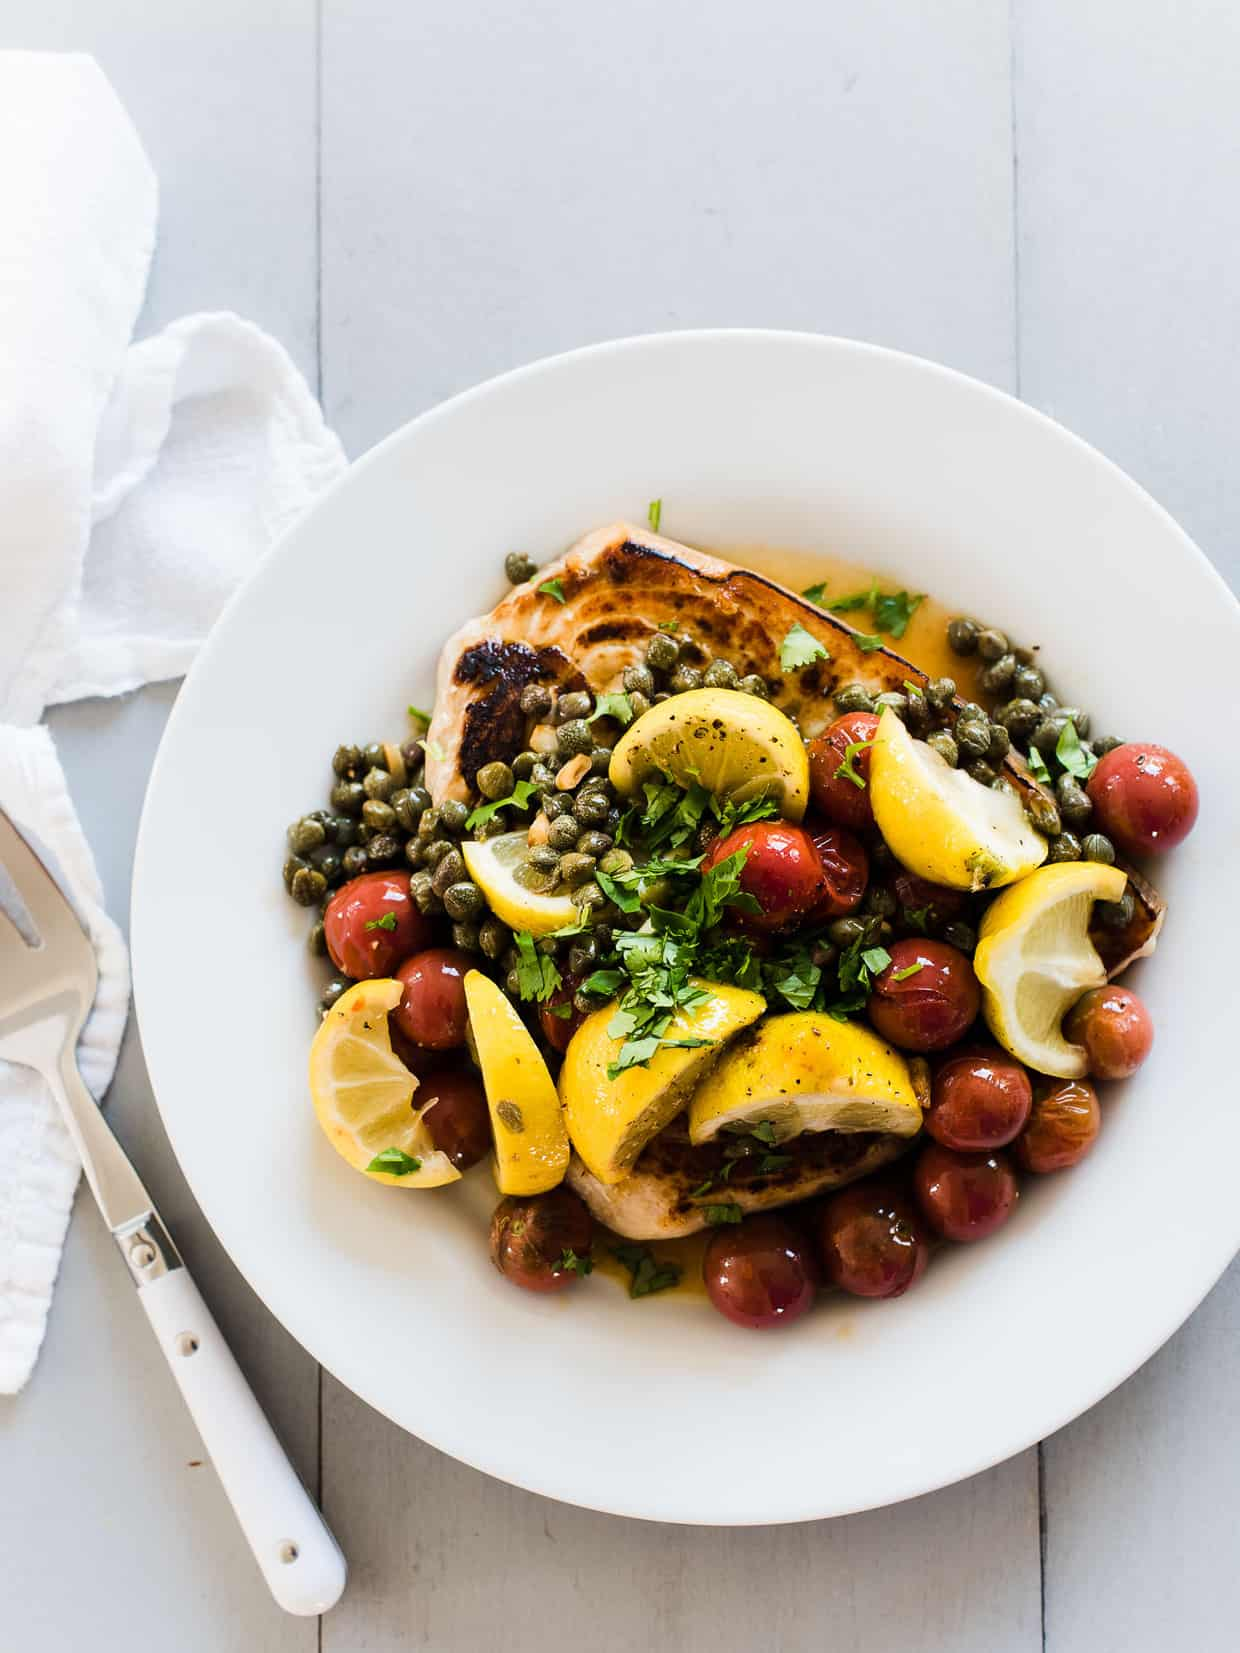 A delicious and simple Swordfish recipe from Chef Jamie Oliver.